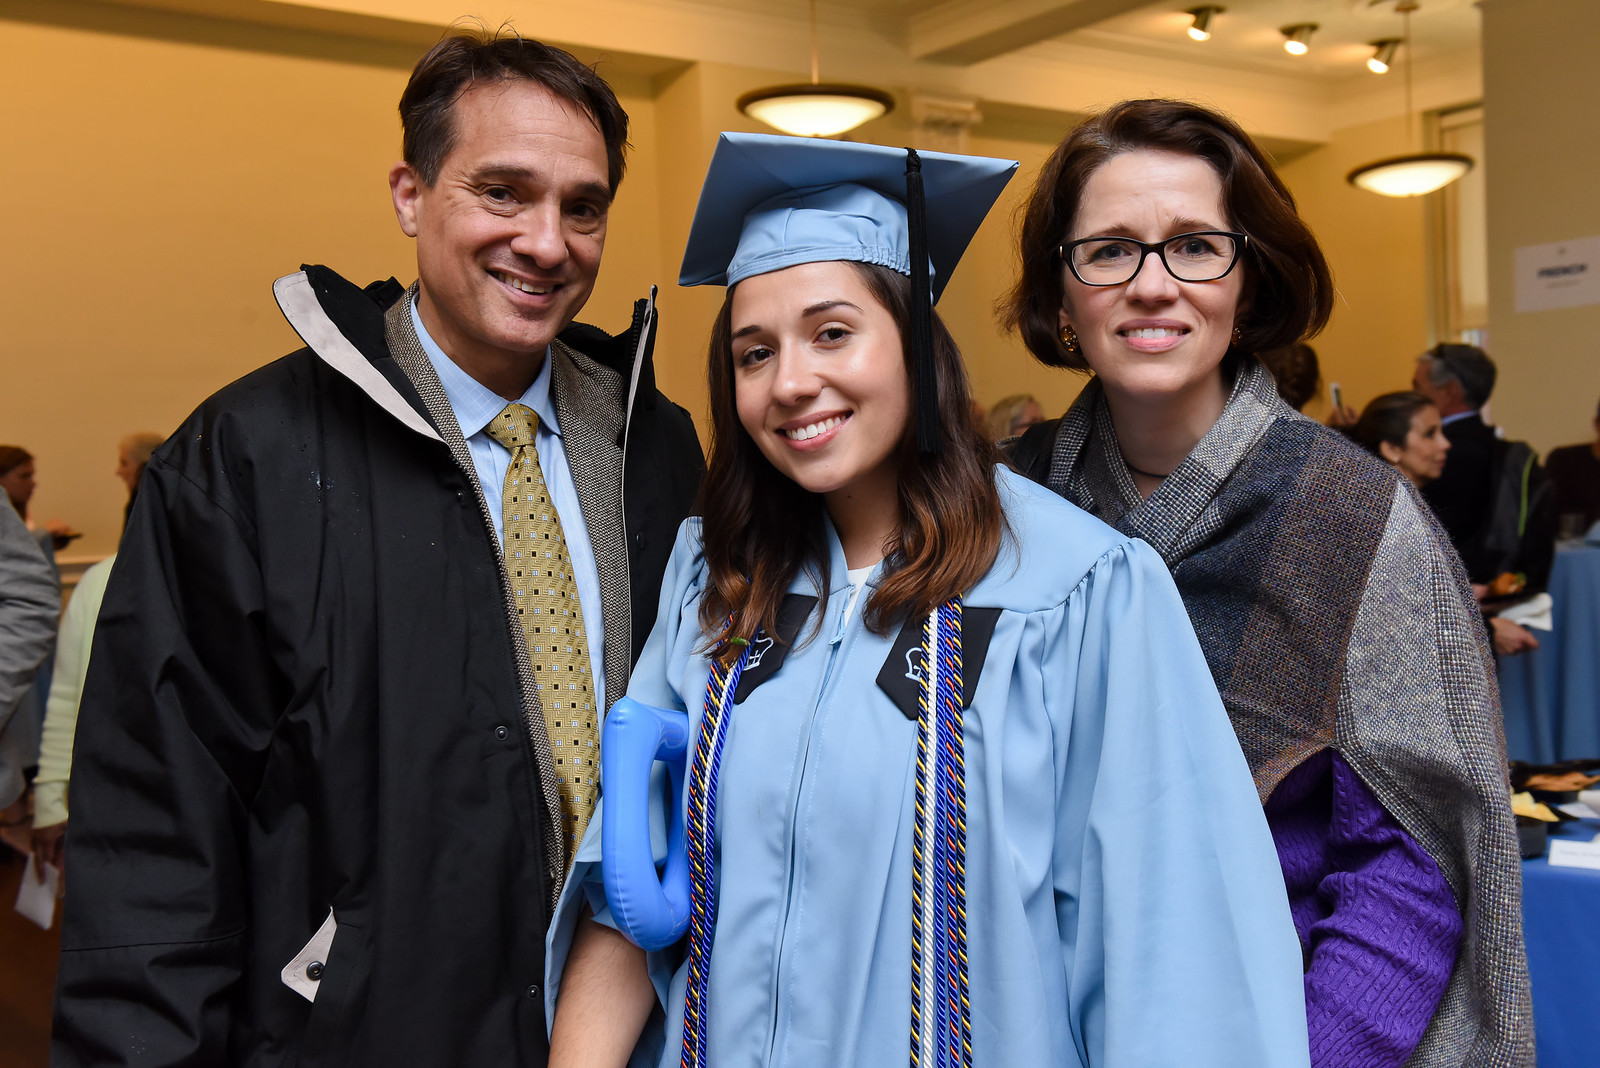 Fathers Day 2018: Dads and Grads